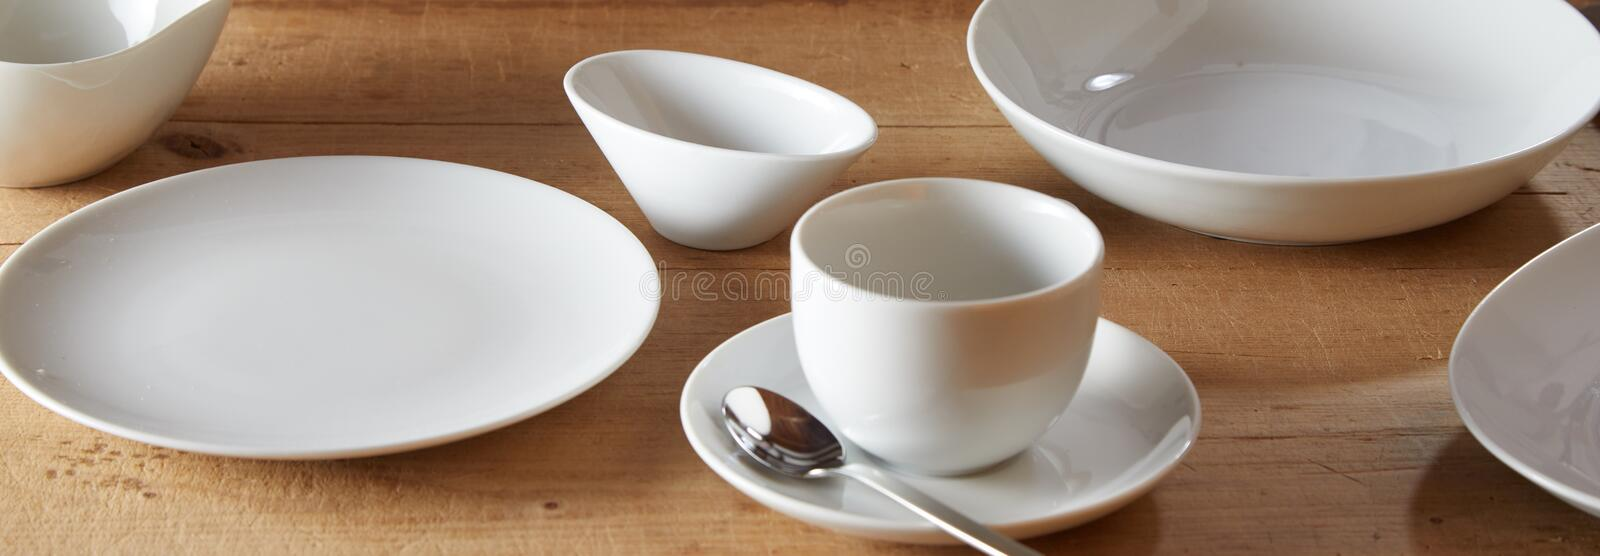 White ceramic tableware on wooden surface stock image